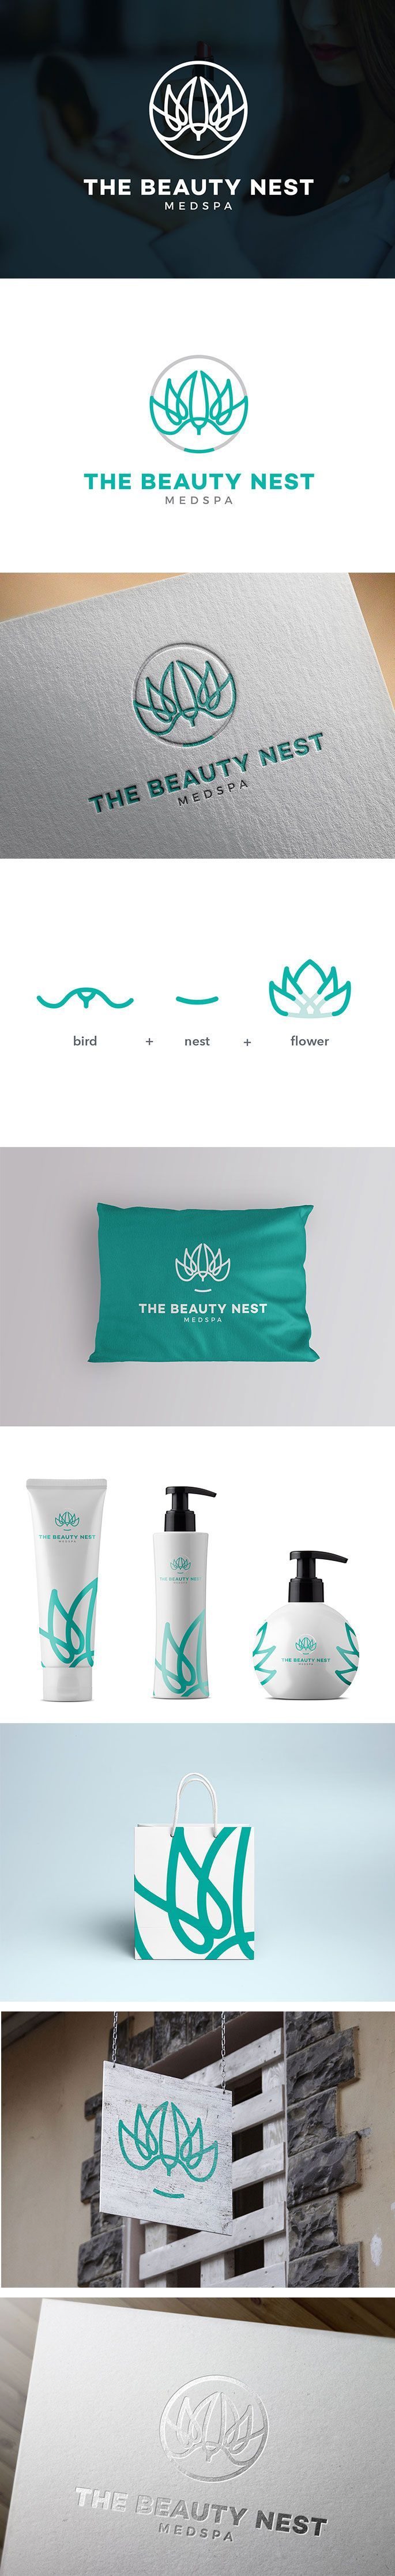 MedSpa Logo Design, Beauty Nest Brand Identity | Spa, Beauty, Clinic, Medical, Bird, Wing, Nest, Mark, Circle | The Beauty Nest MedSPa, Las Vegas US | Celine Le Duigou, Freelance Graphic Designer Perth Australia